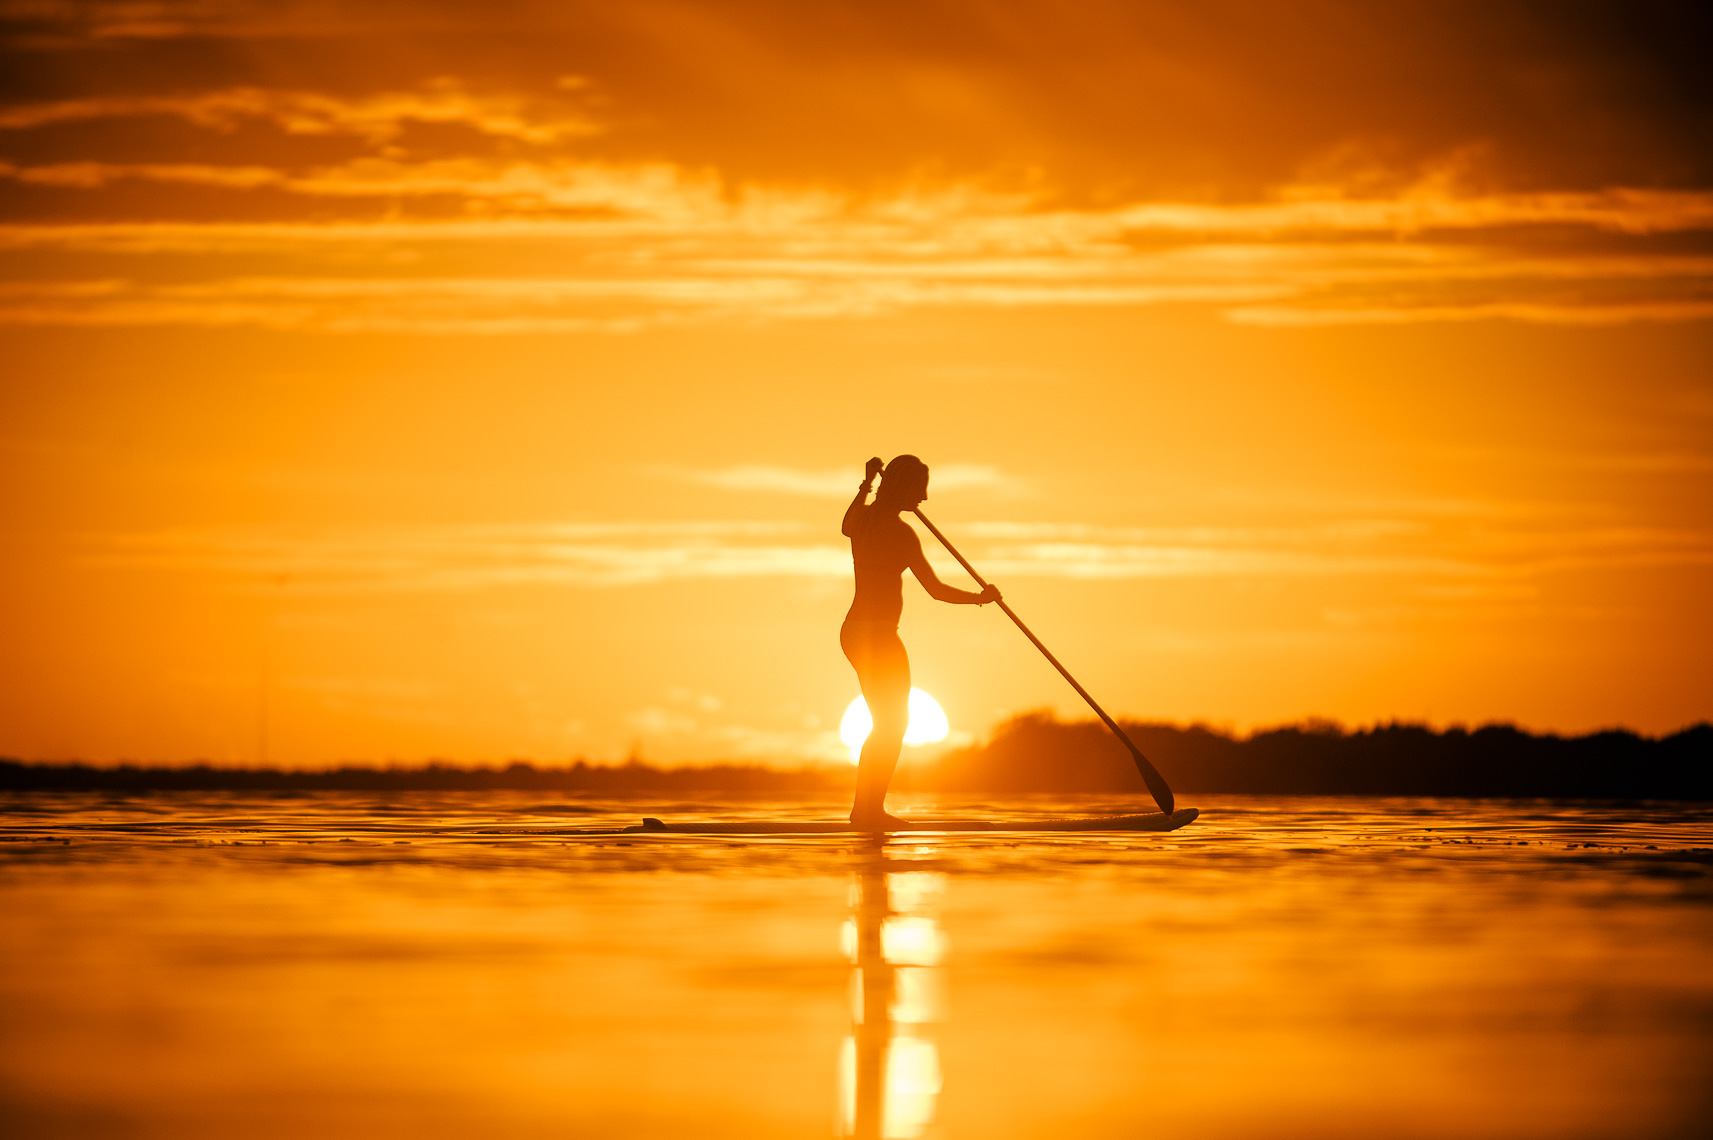 keys_sunset_sup_070113_lowres_LEE-3295